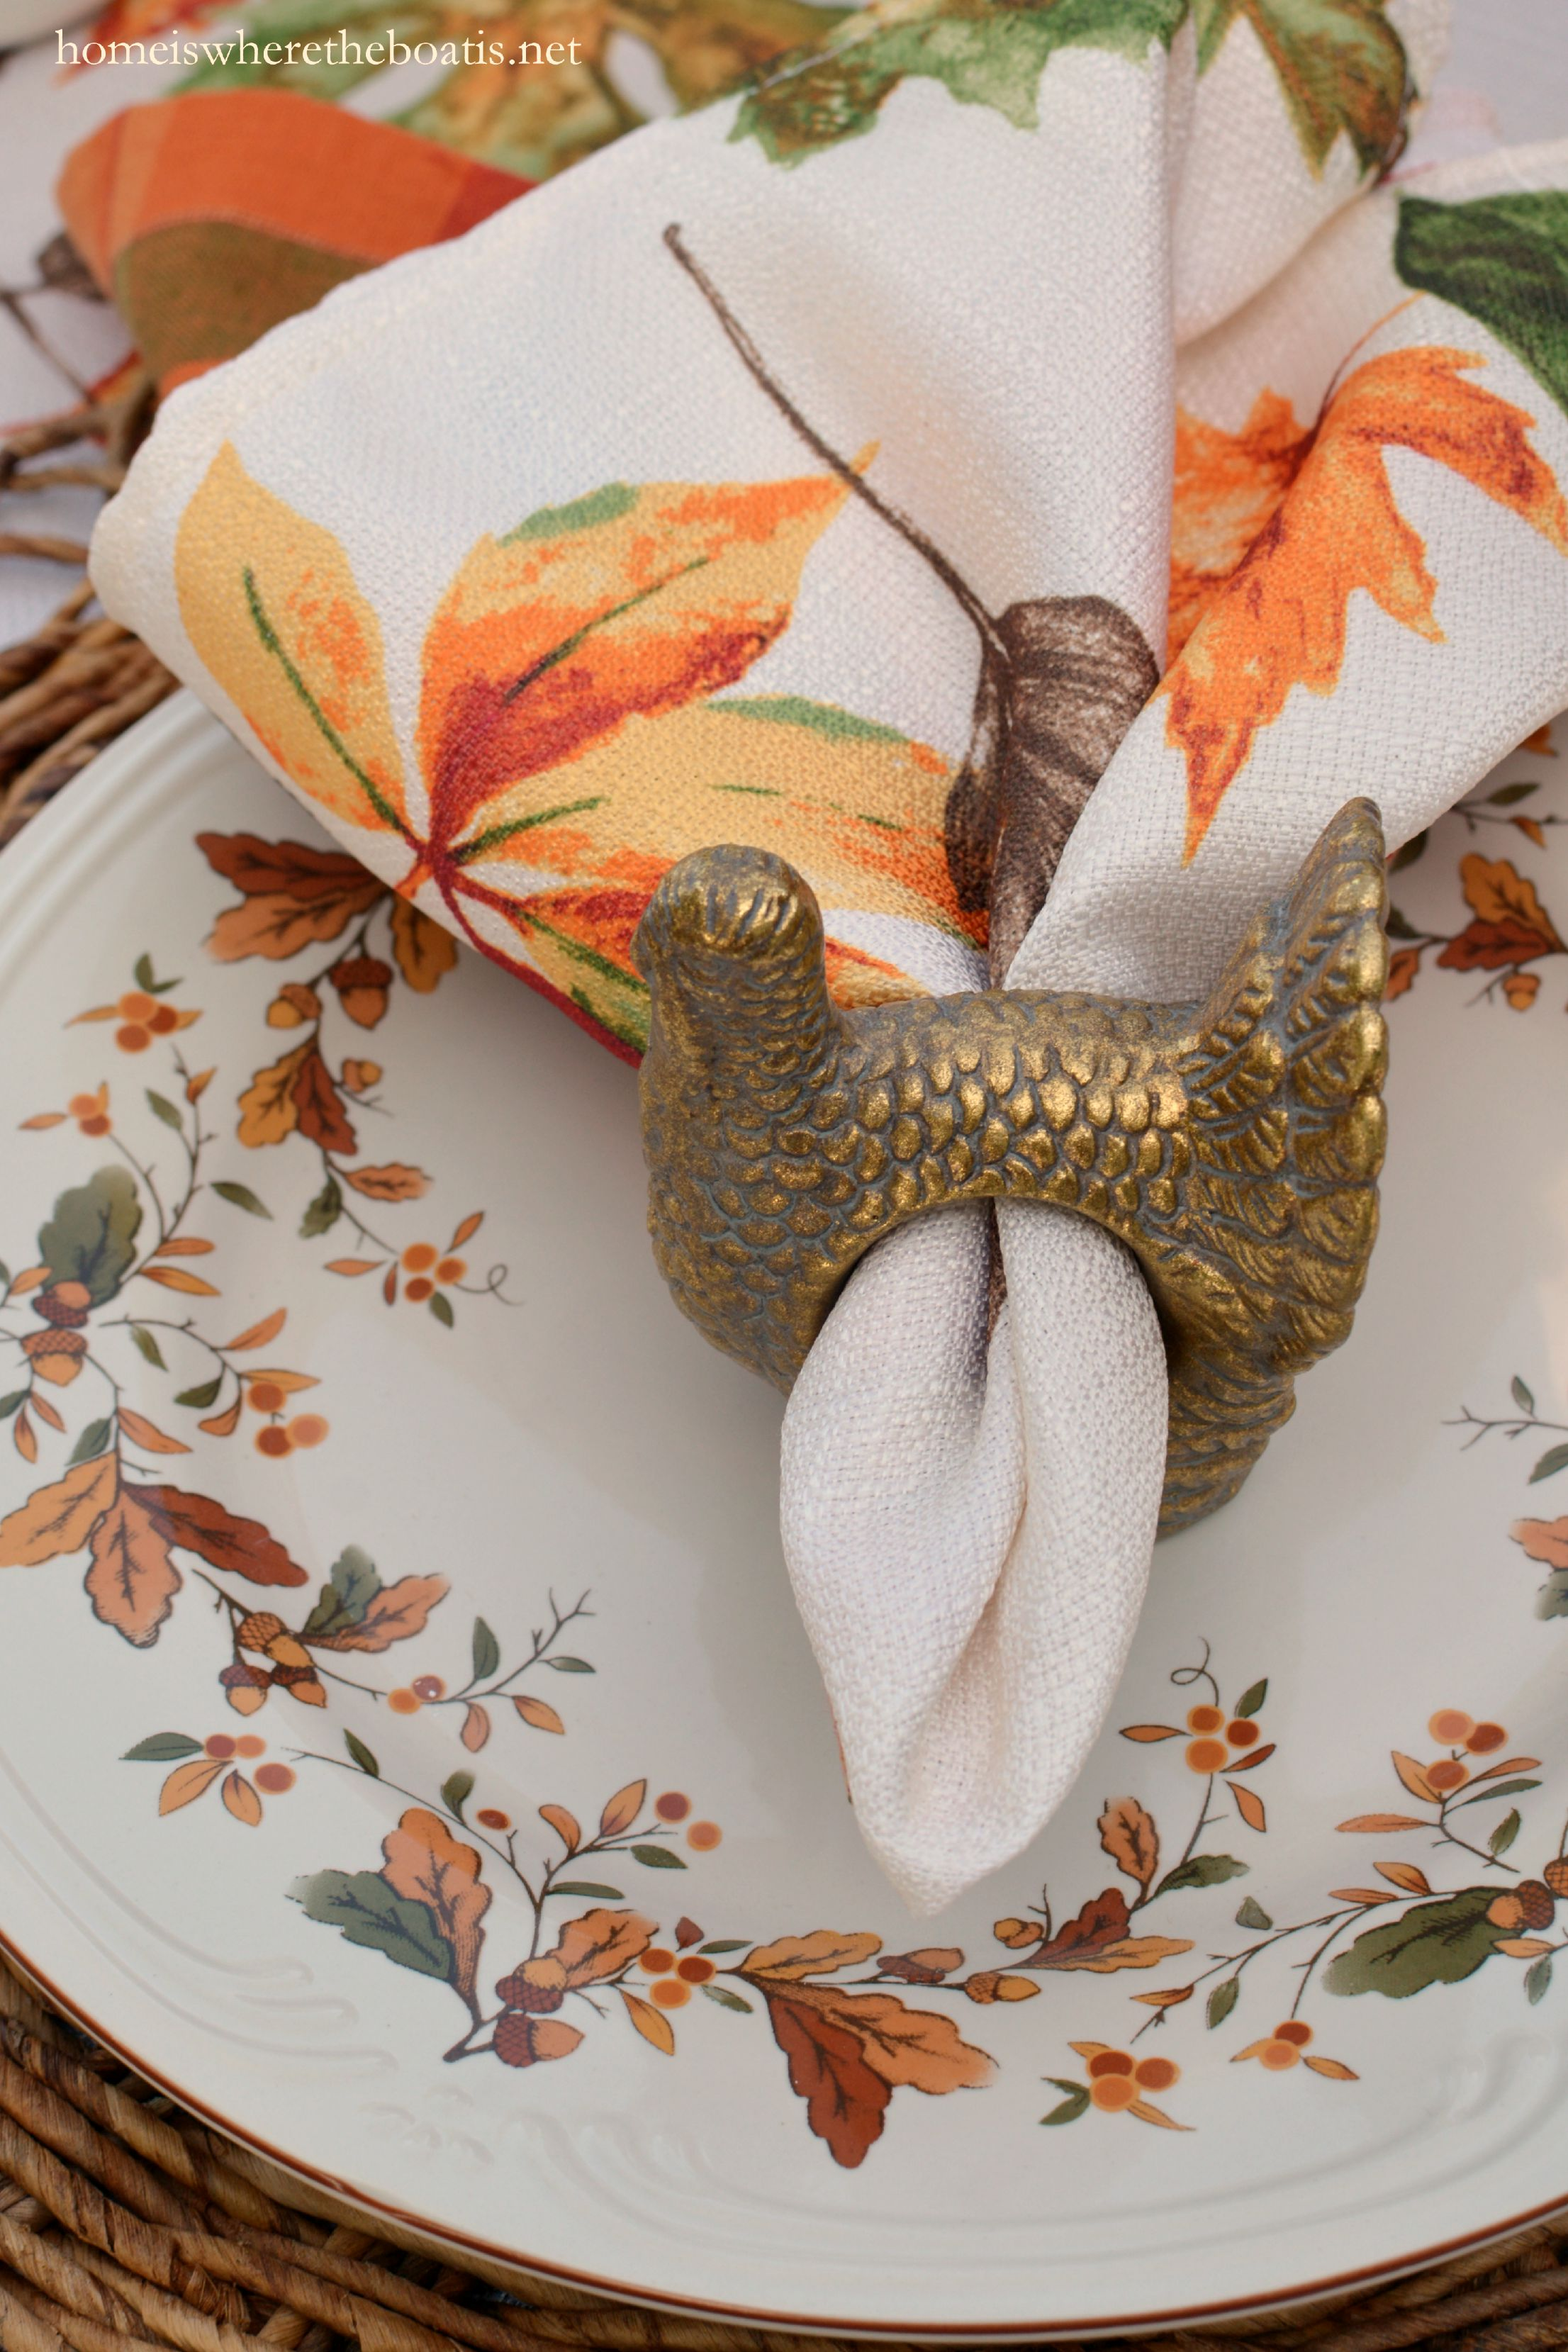 Autumn Berry coordinates with Pfaltzgraff Filigree sharing the same white embossed scrolled detailing around the rims. & Scattered Leaves Turkeys and Pfaltzgraff Autumn Berry Dinnerware ...